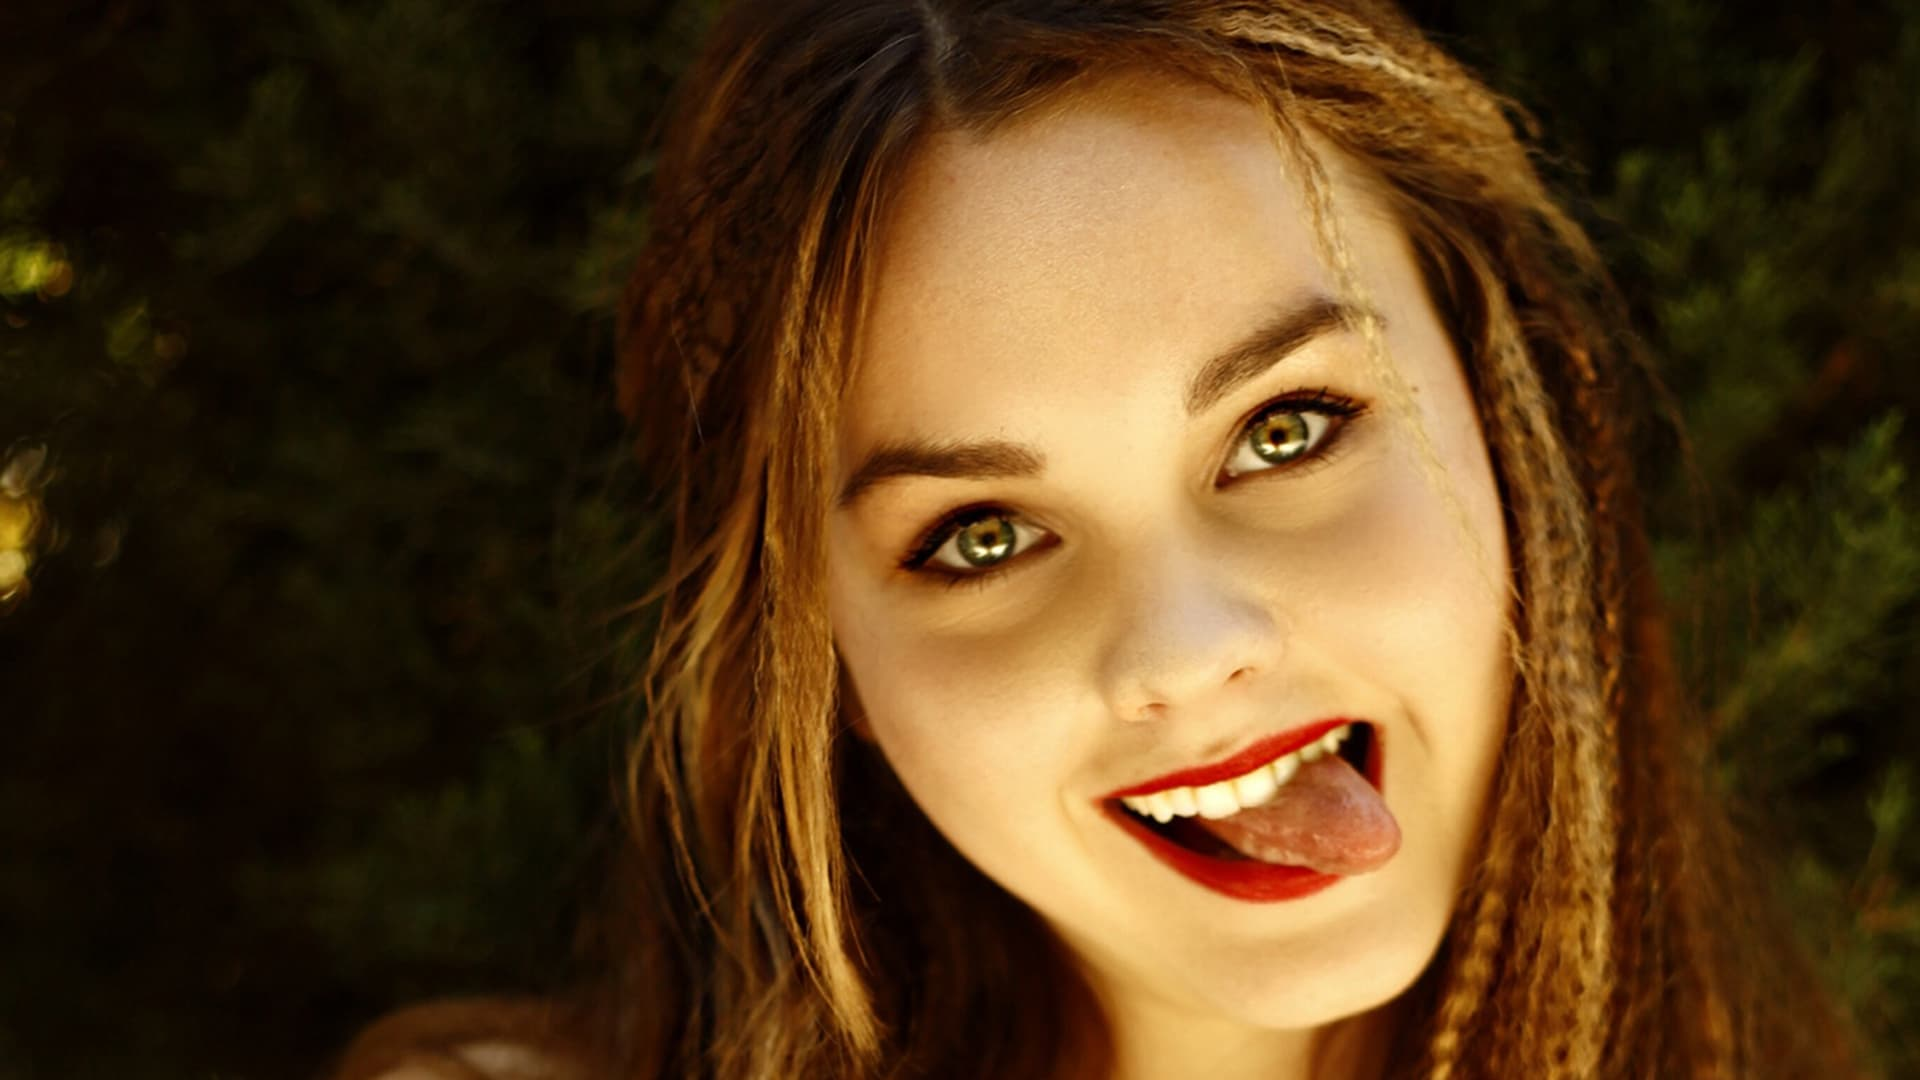 Liana Liberato wallpapers HD HIgh Quality Resolution Download